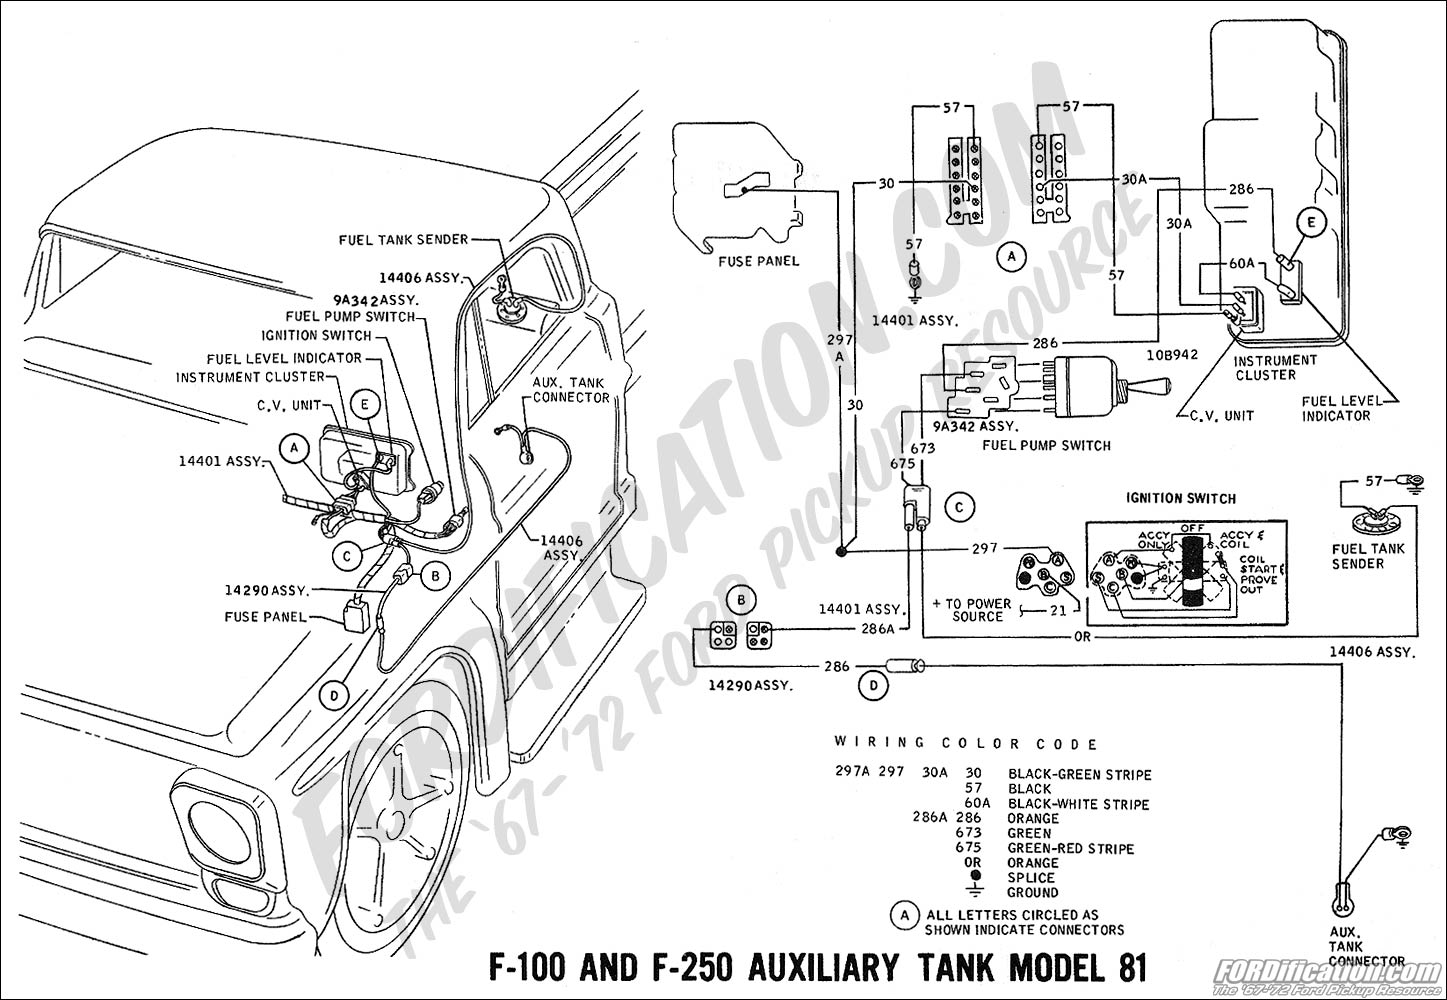 1950 chevy truck wiring diagram with 997658 1969 Fuel Gauge Togle Switch For Duel Tanks on 1950 Chevy Truck Frame Swap Body Mount Kit further HP PartList moreover The Neverending Gas Gauge Dilemma topic12752 in addition Car Parts Diagram Door Jamb moreover Wiring.